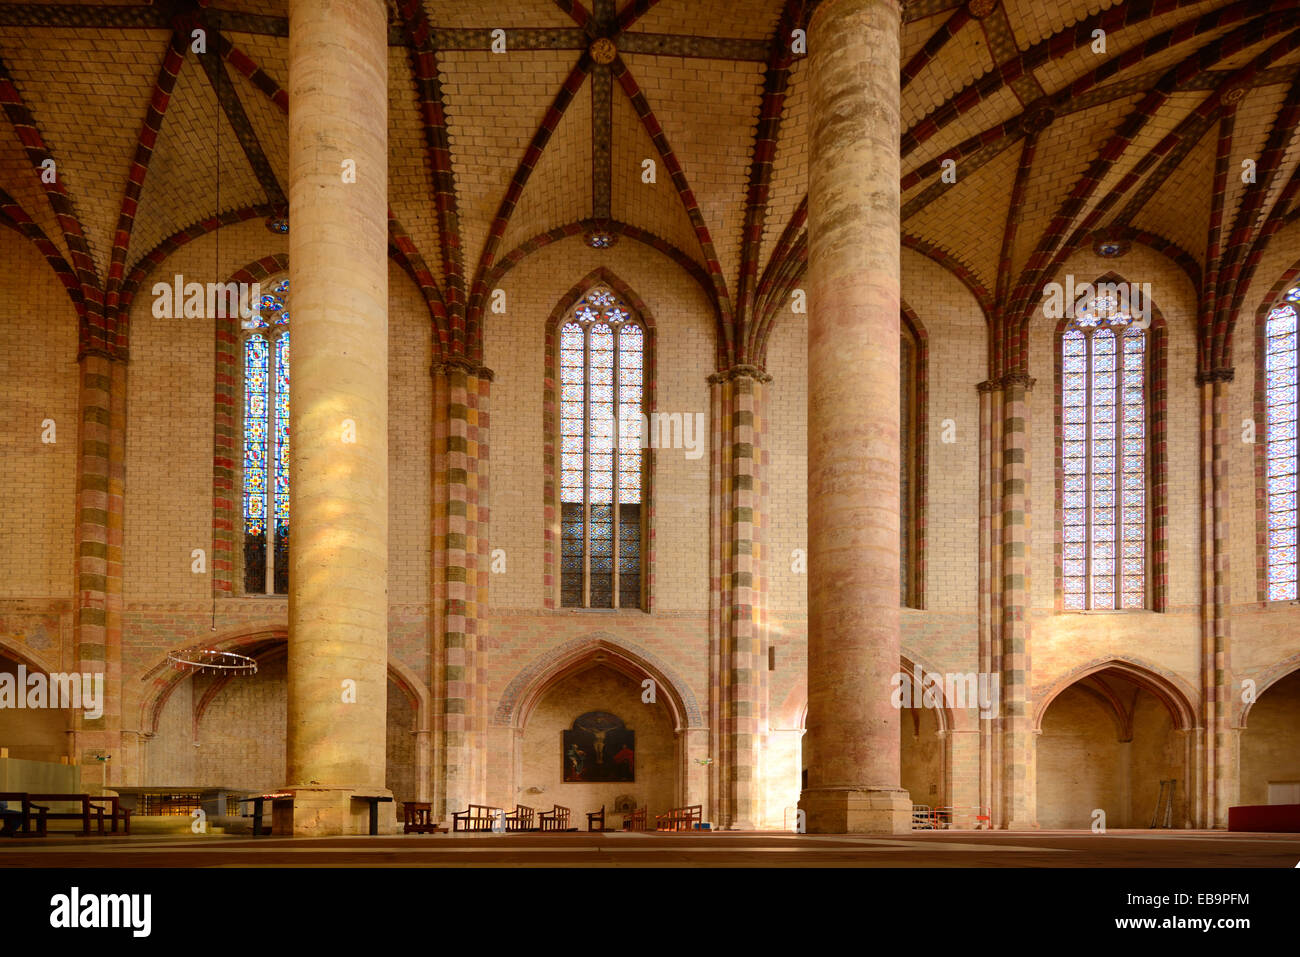 Nave Interior U0026 Columns Of The Gothic U0026 Romanesque Jacobins Church Or  Monastery Toulouse Haute Garonne France